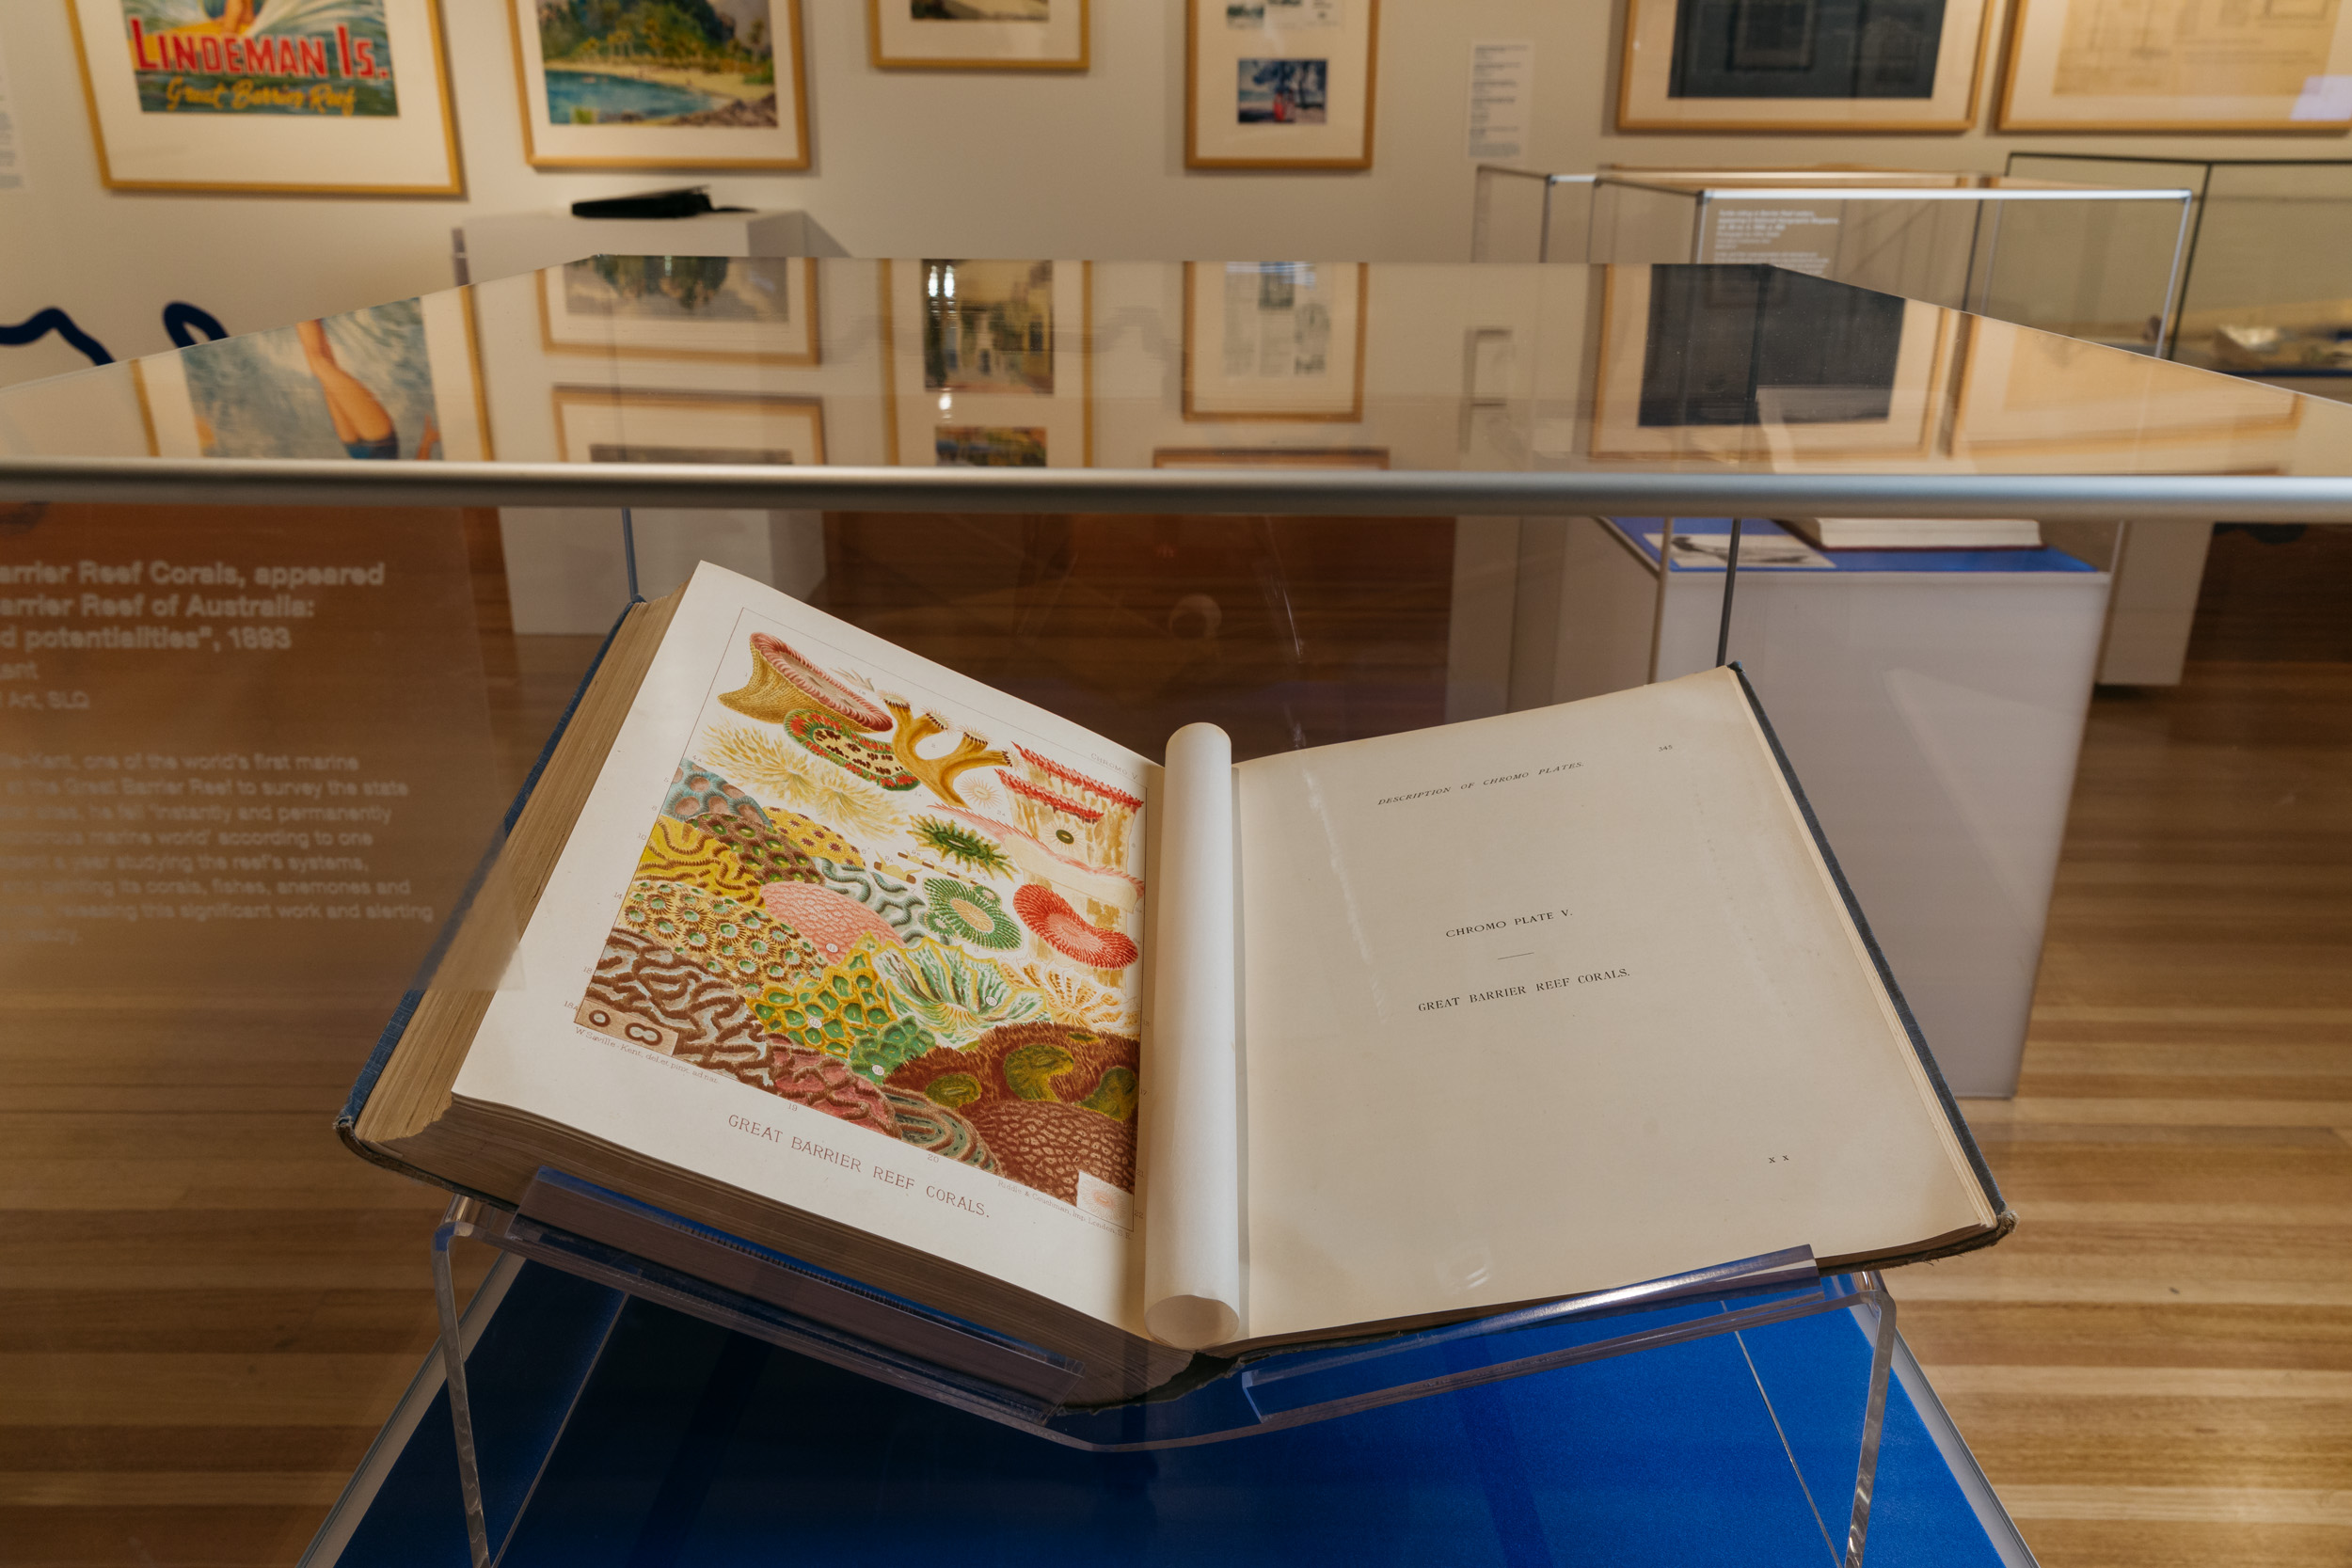 Preserved book in the Islands exhibition at the State Library of Queensland Photo by Josef Ruckli